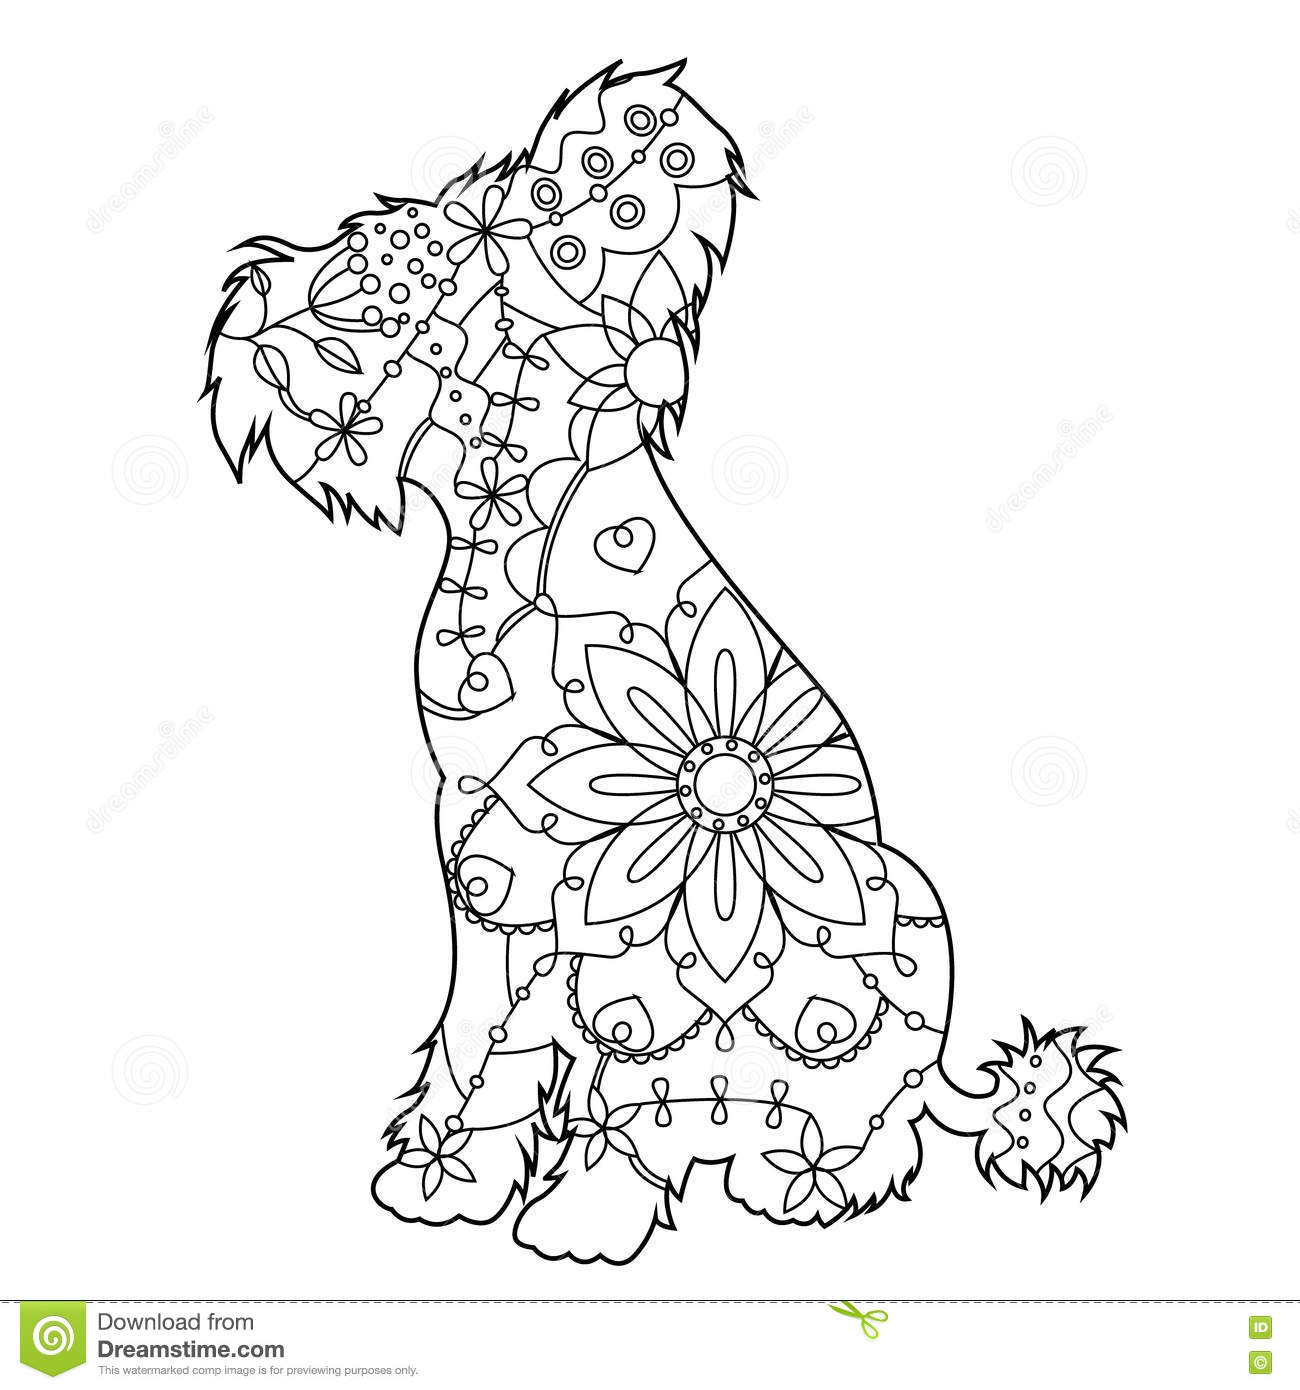 Chinese Crested Dog coloring #17, Download drawings